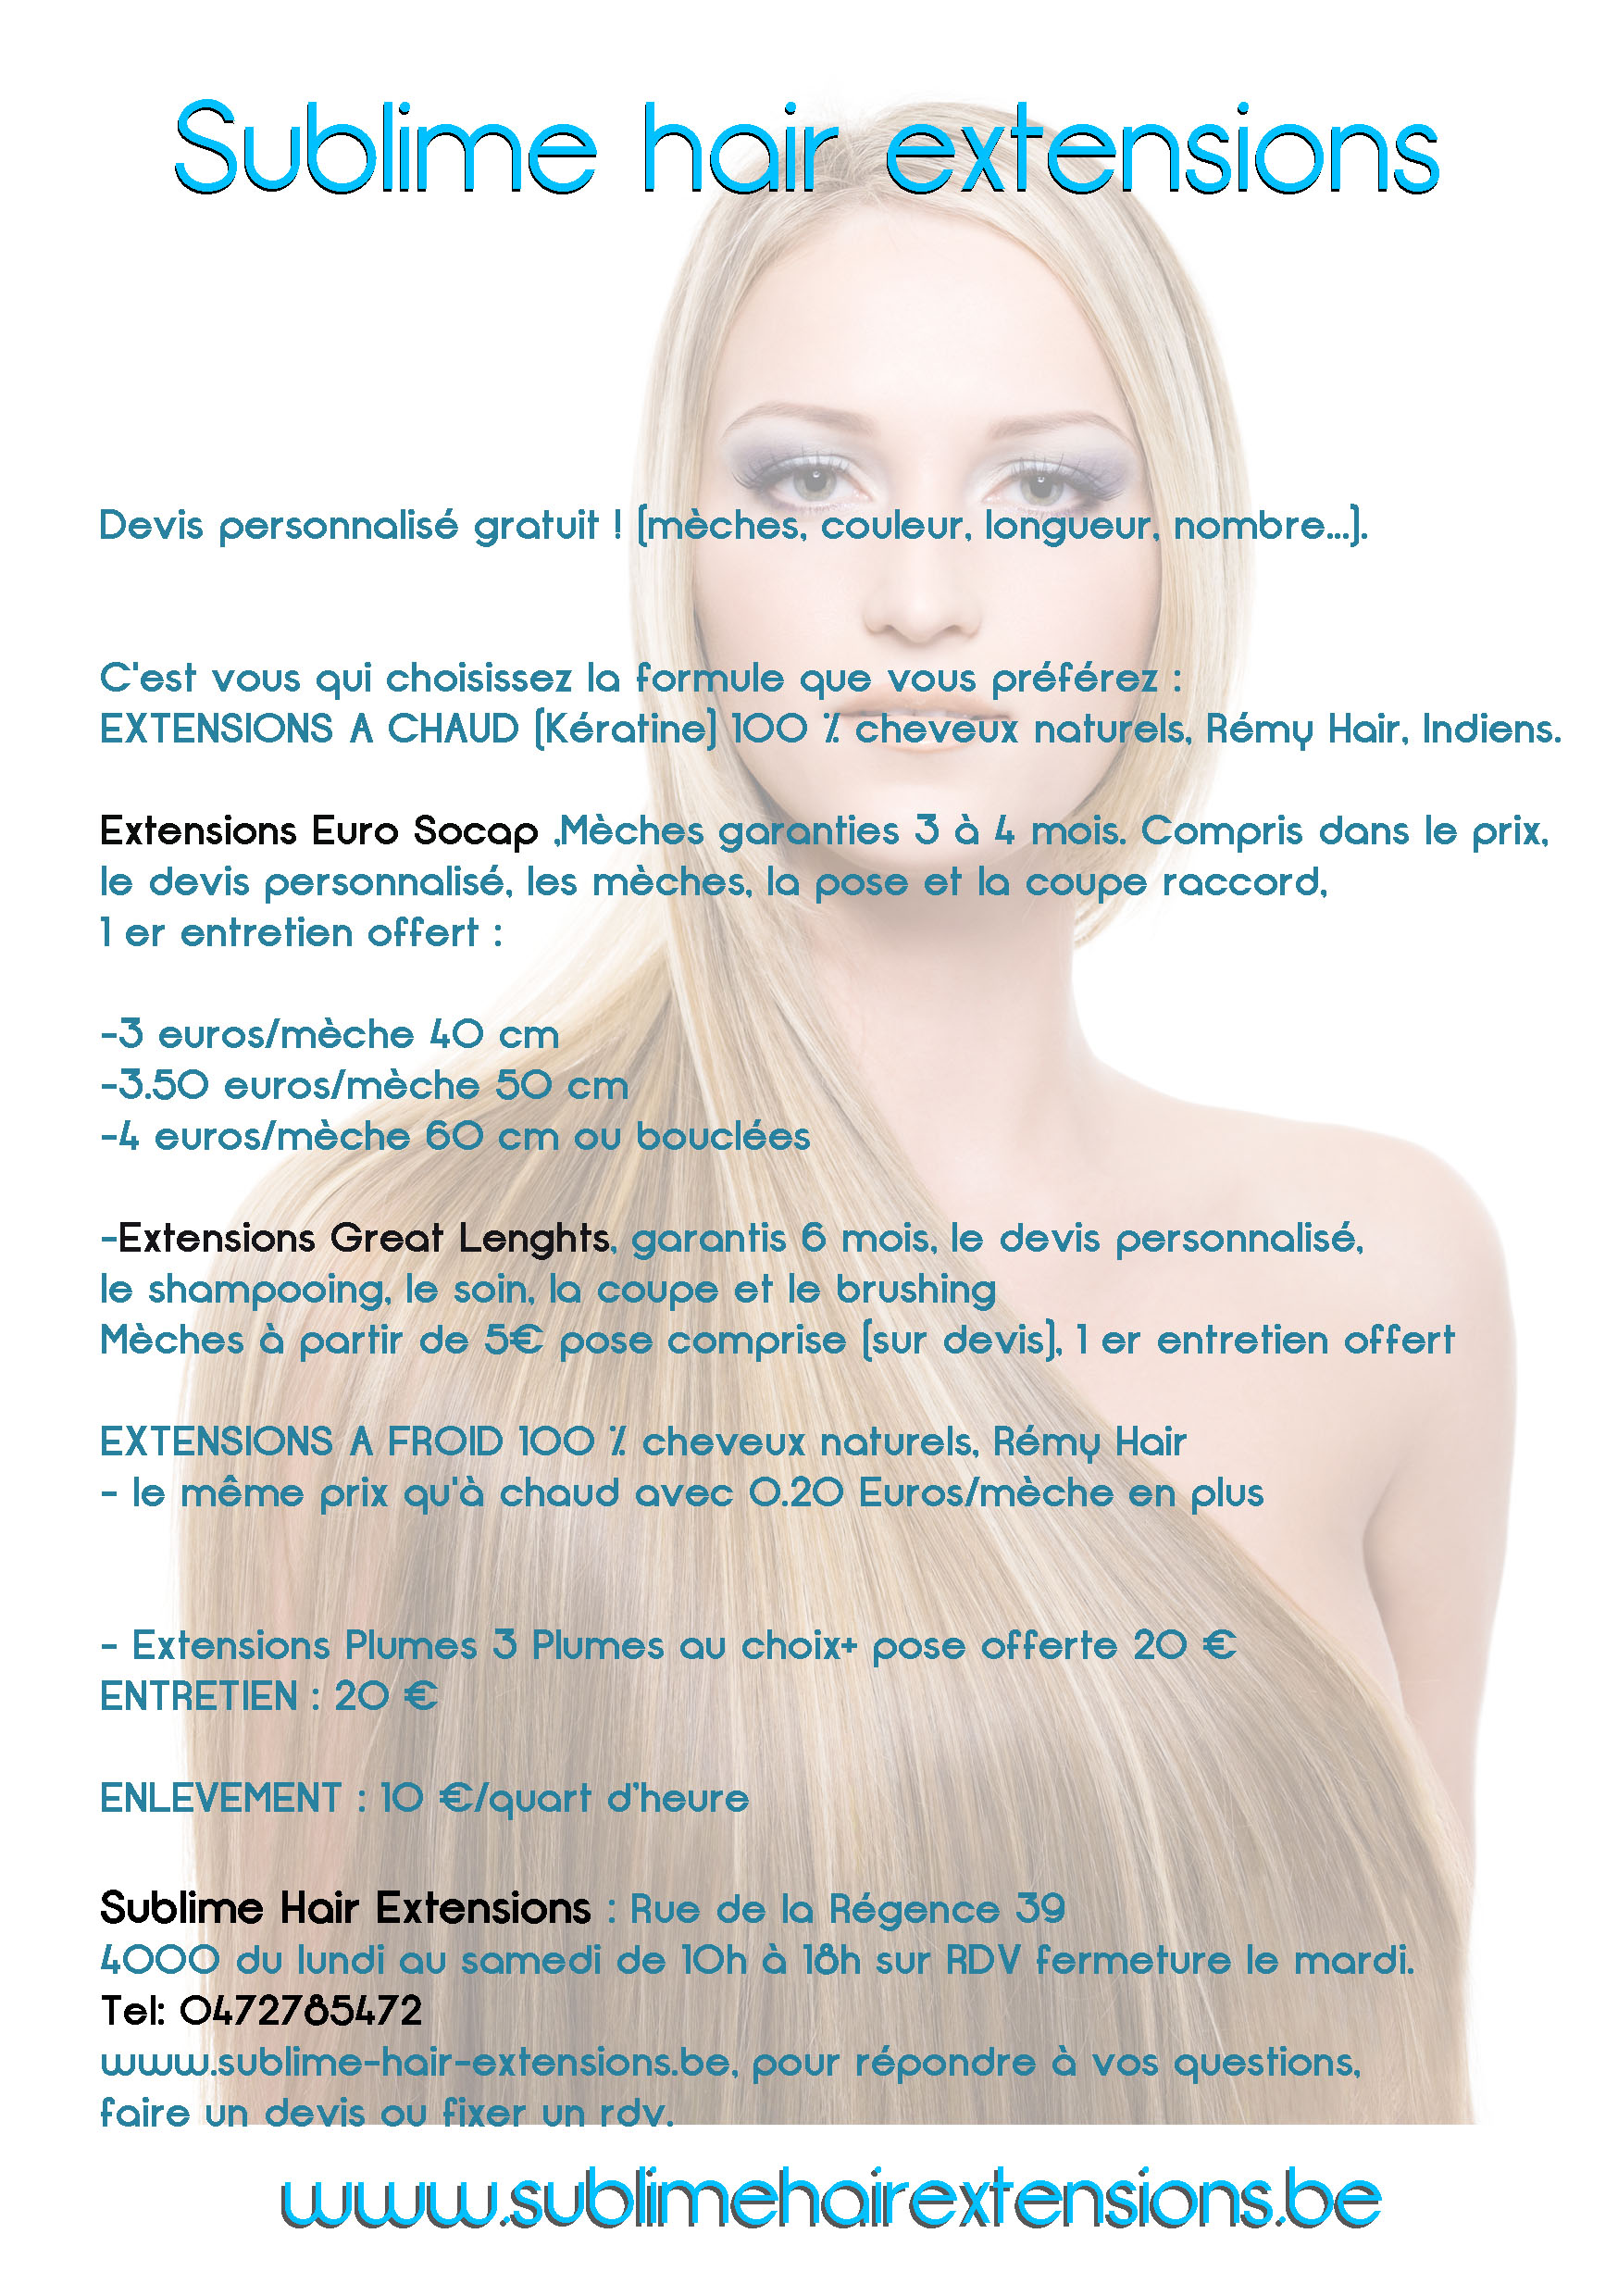 Tarif extensions cheveux naturels great lengh euro socap for Tarif extension